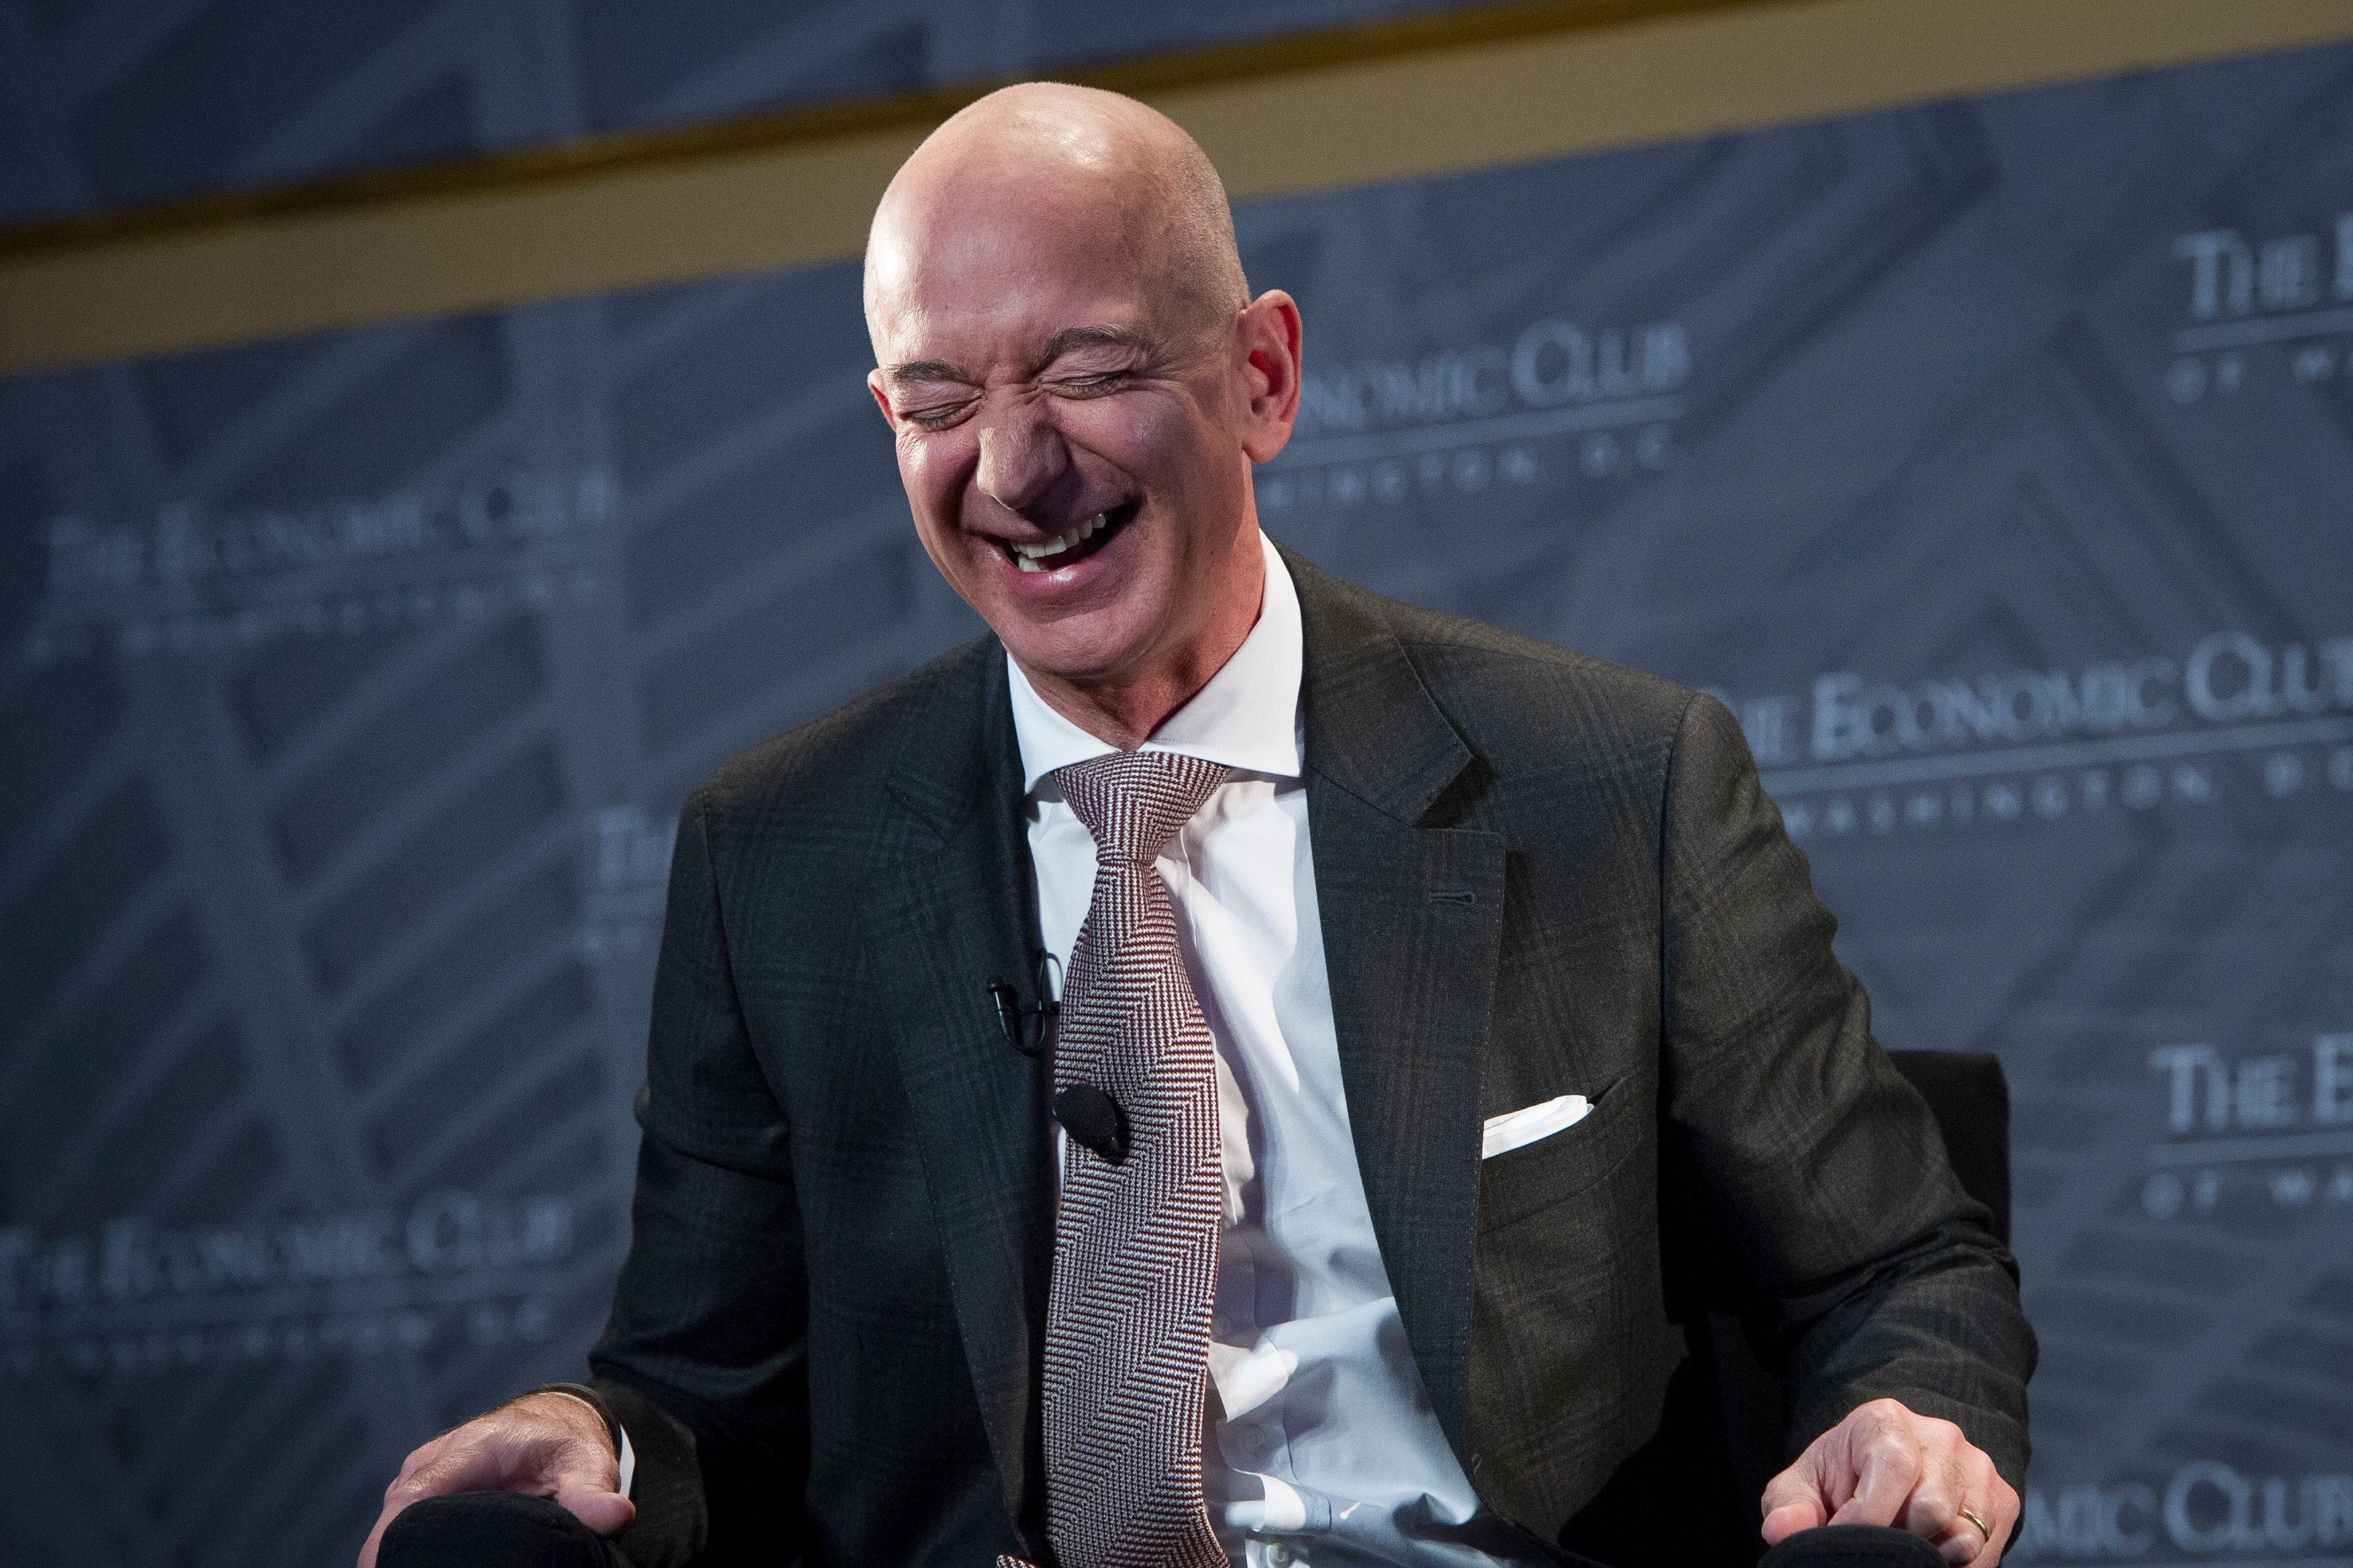 Jeff Bezos, Amazon founder and CEO, laughs as he speaks at The Economic Club of Washington's Milestone Celebration in Washington, Thursday, Sept. 13, 2018. Bezos said that he is giving $2 billion to start the Bezos Day One Fund which will open preschools in low-income neighborhoods and give money to nonprofits that helps homeless families. (AP Photo/Cliff Owen)